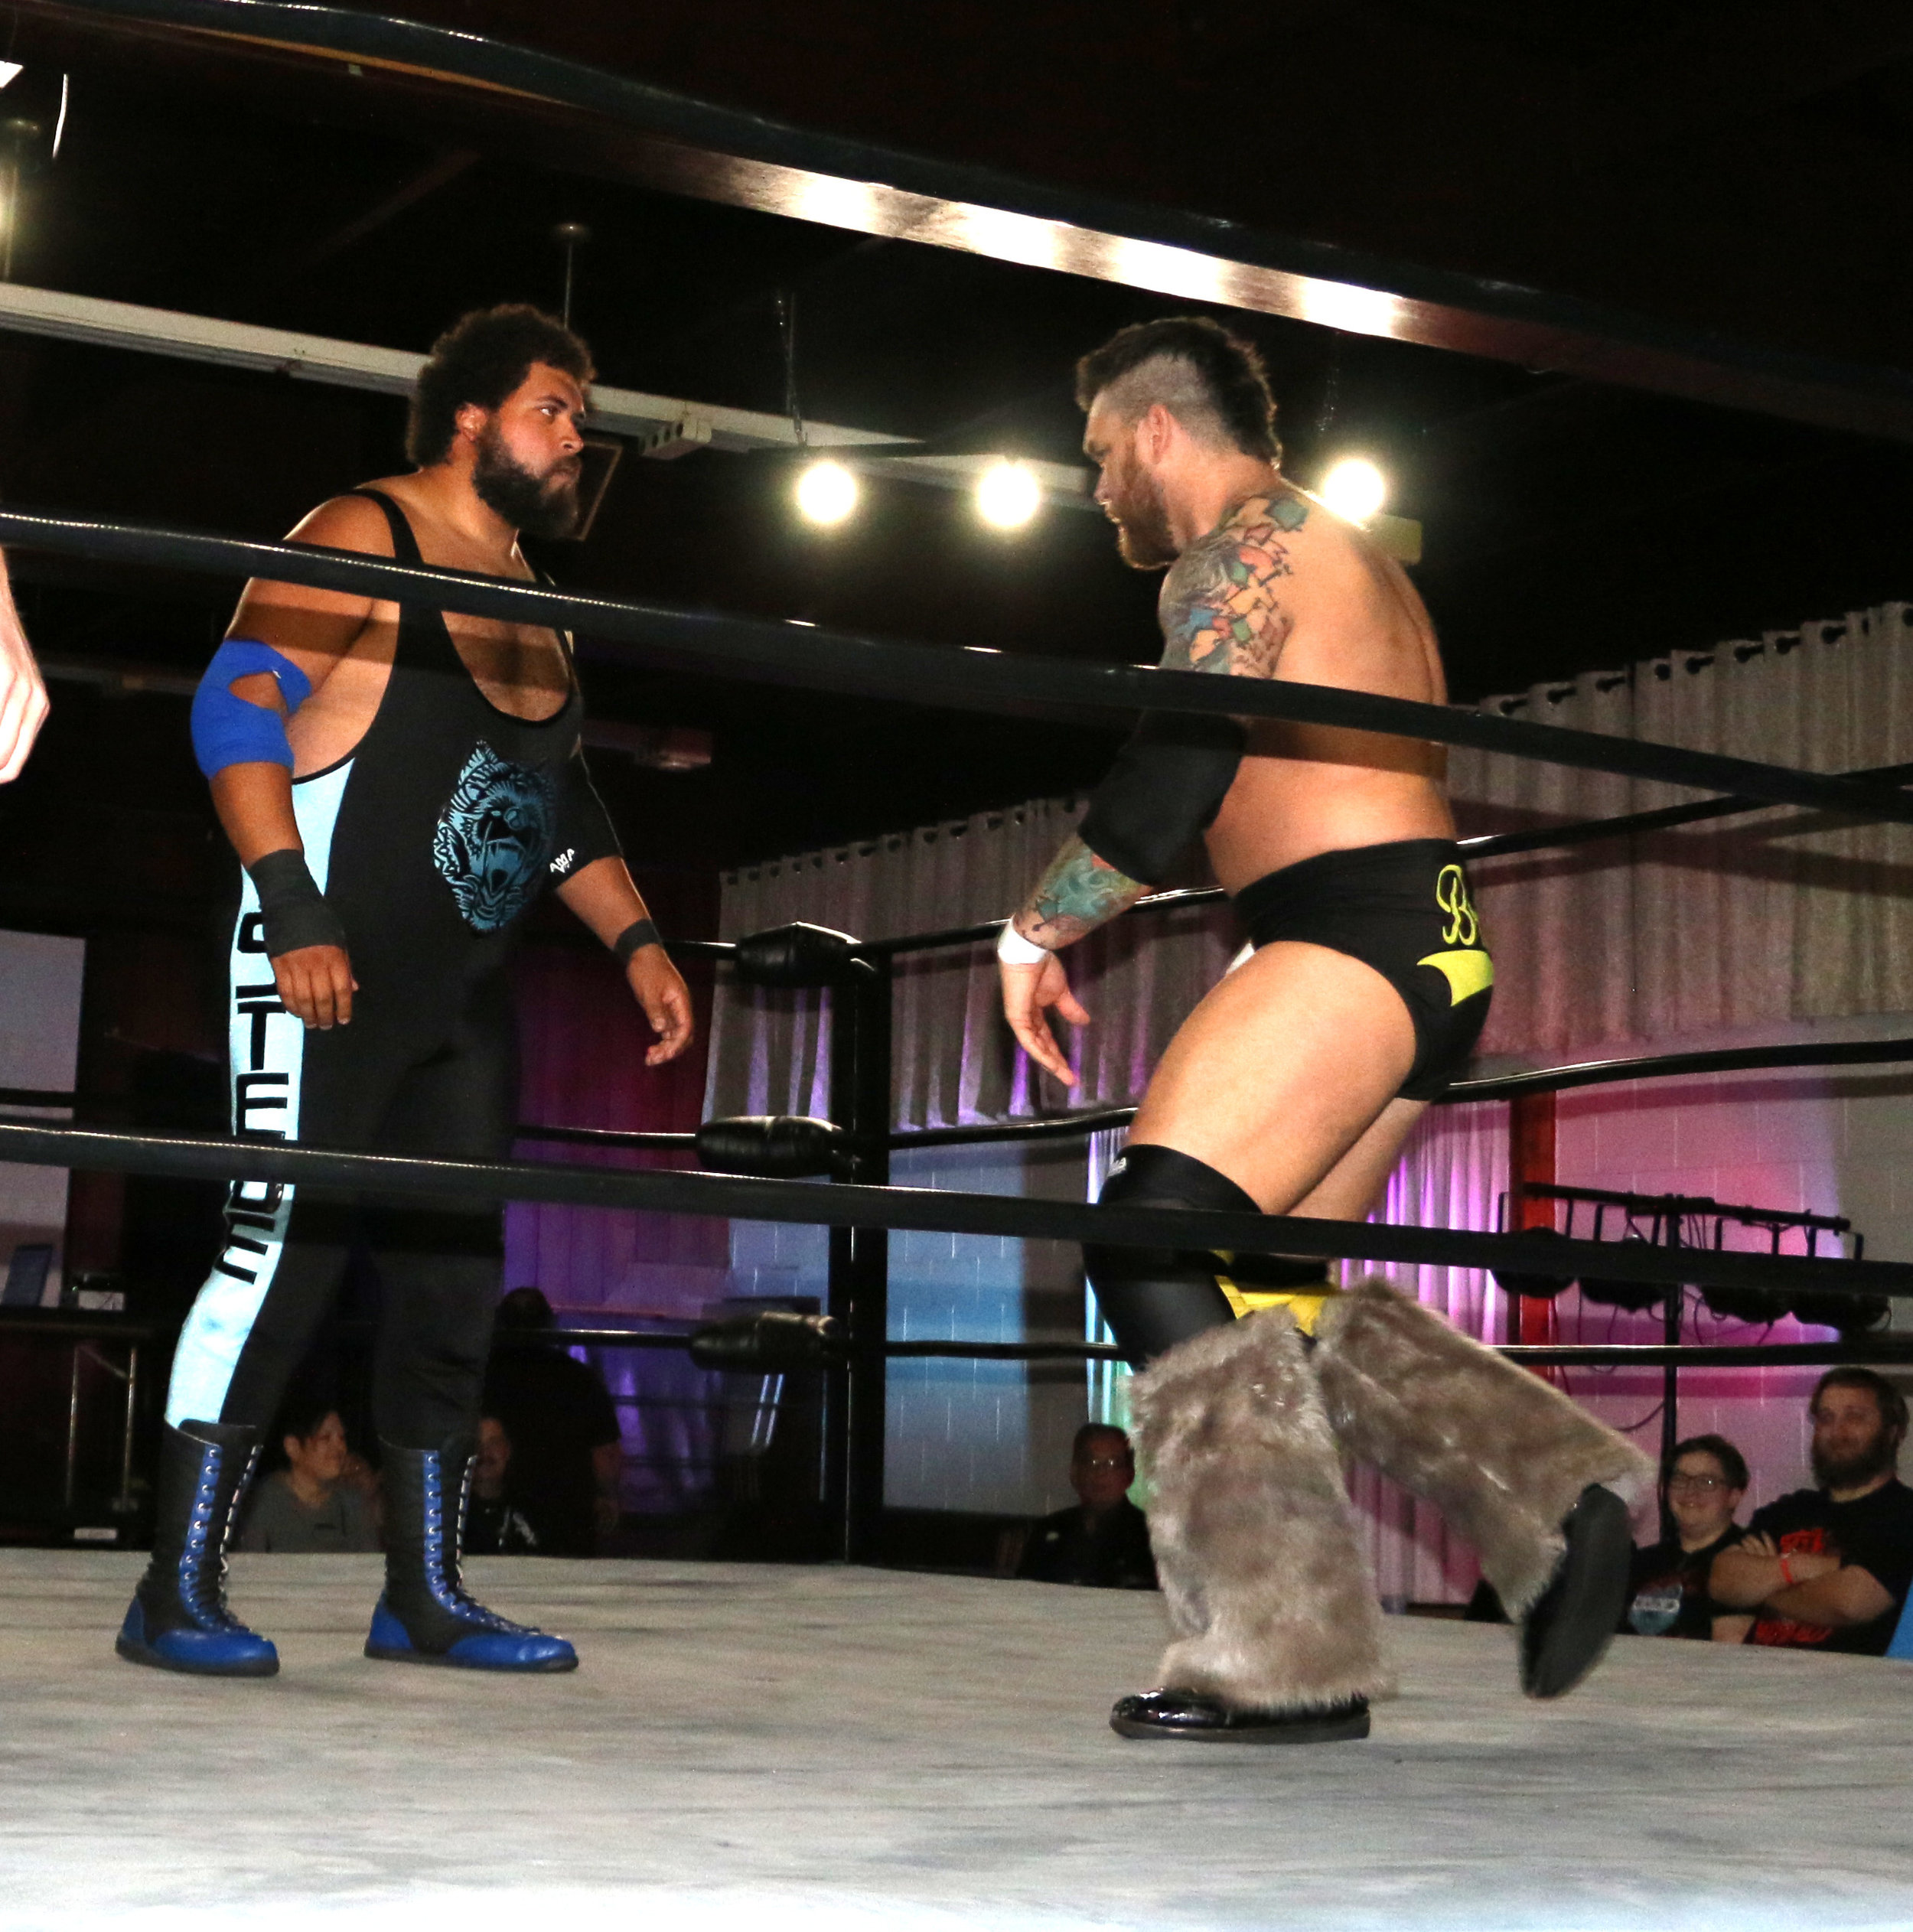 Steve Michaels, left, sizes up veteran Jay Bradley in their semi-main event match of Berwyn Championship Wrestling's show at the Berwyn Eagles Club on Saturday, Sept. 22, 2018.  (Photo by Mike Pankow)